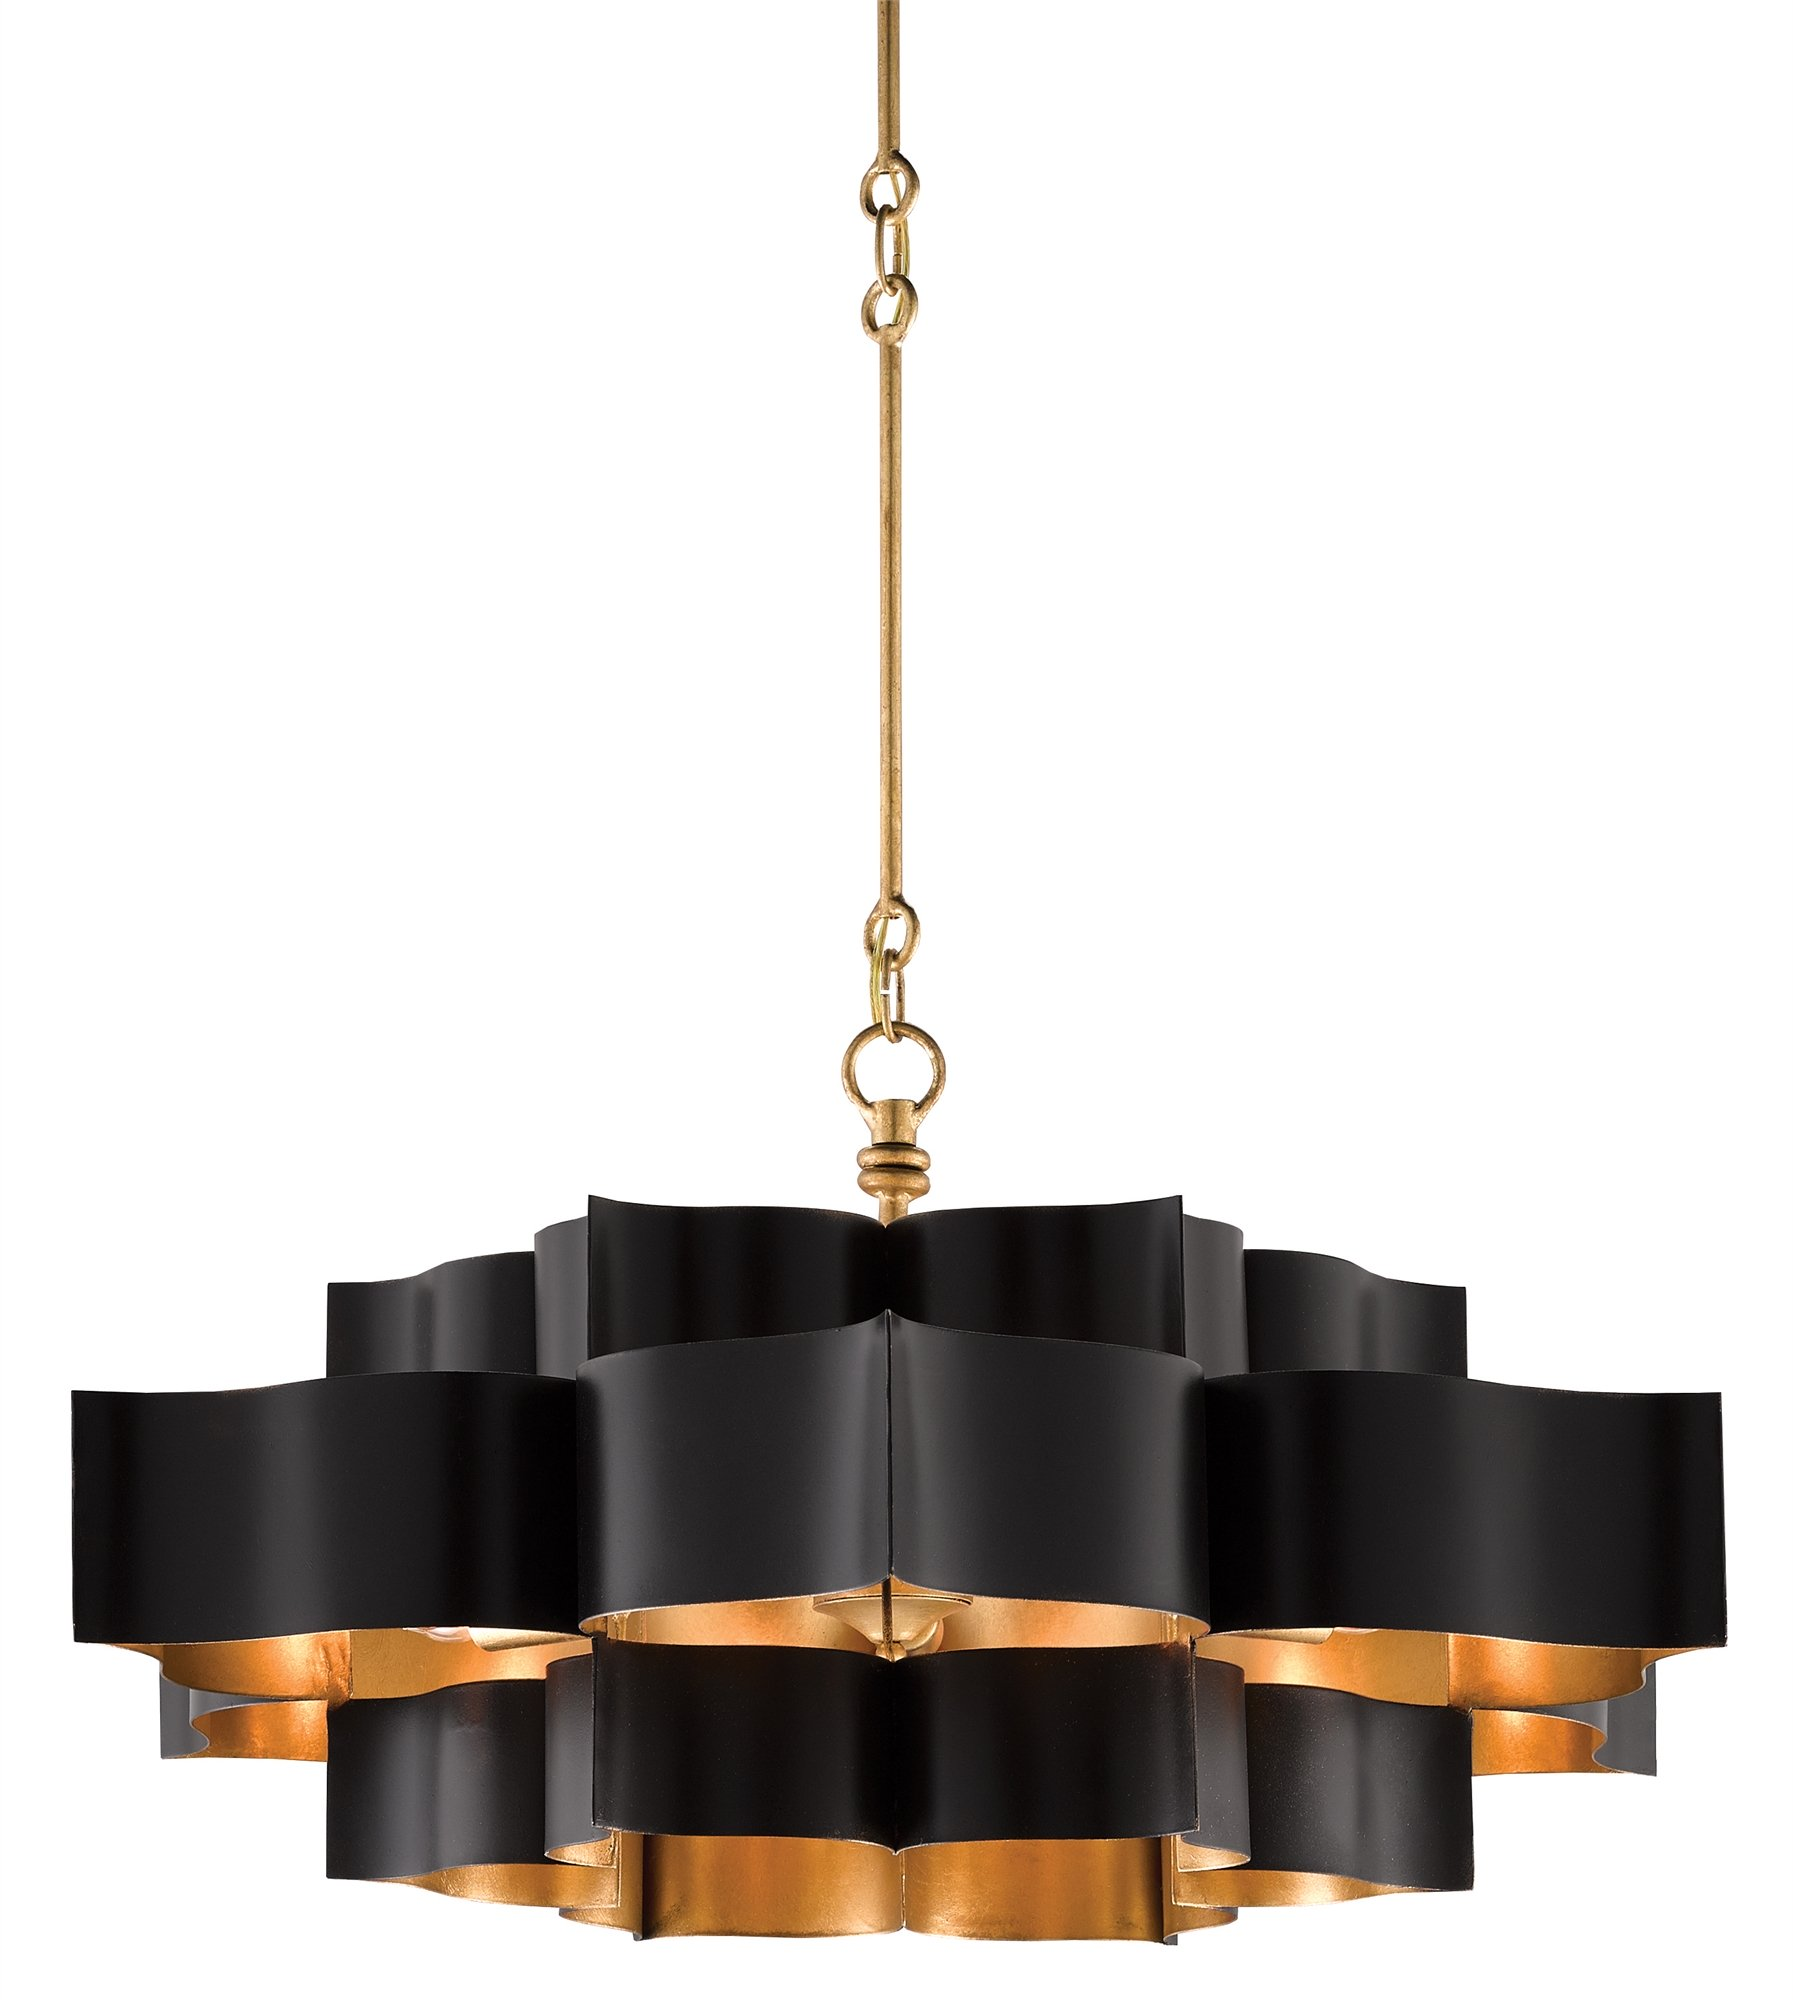 Currey & Company's Grand Lotus Chandelier in black and gold finish is simply stunning